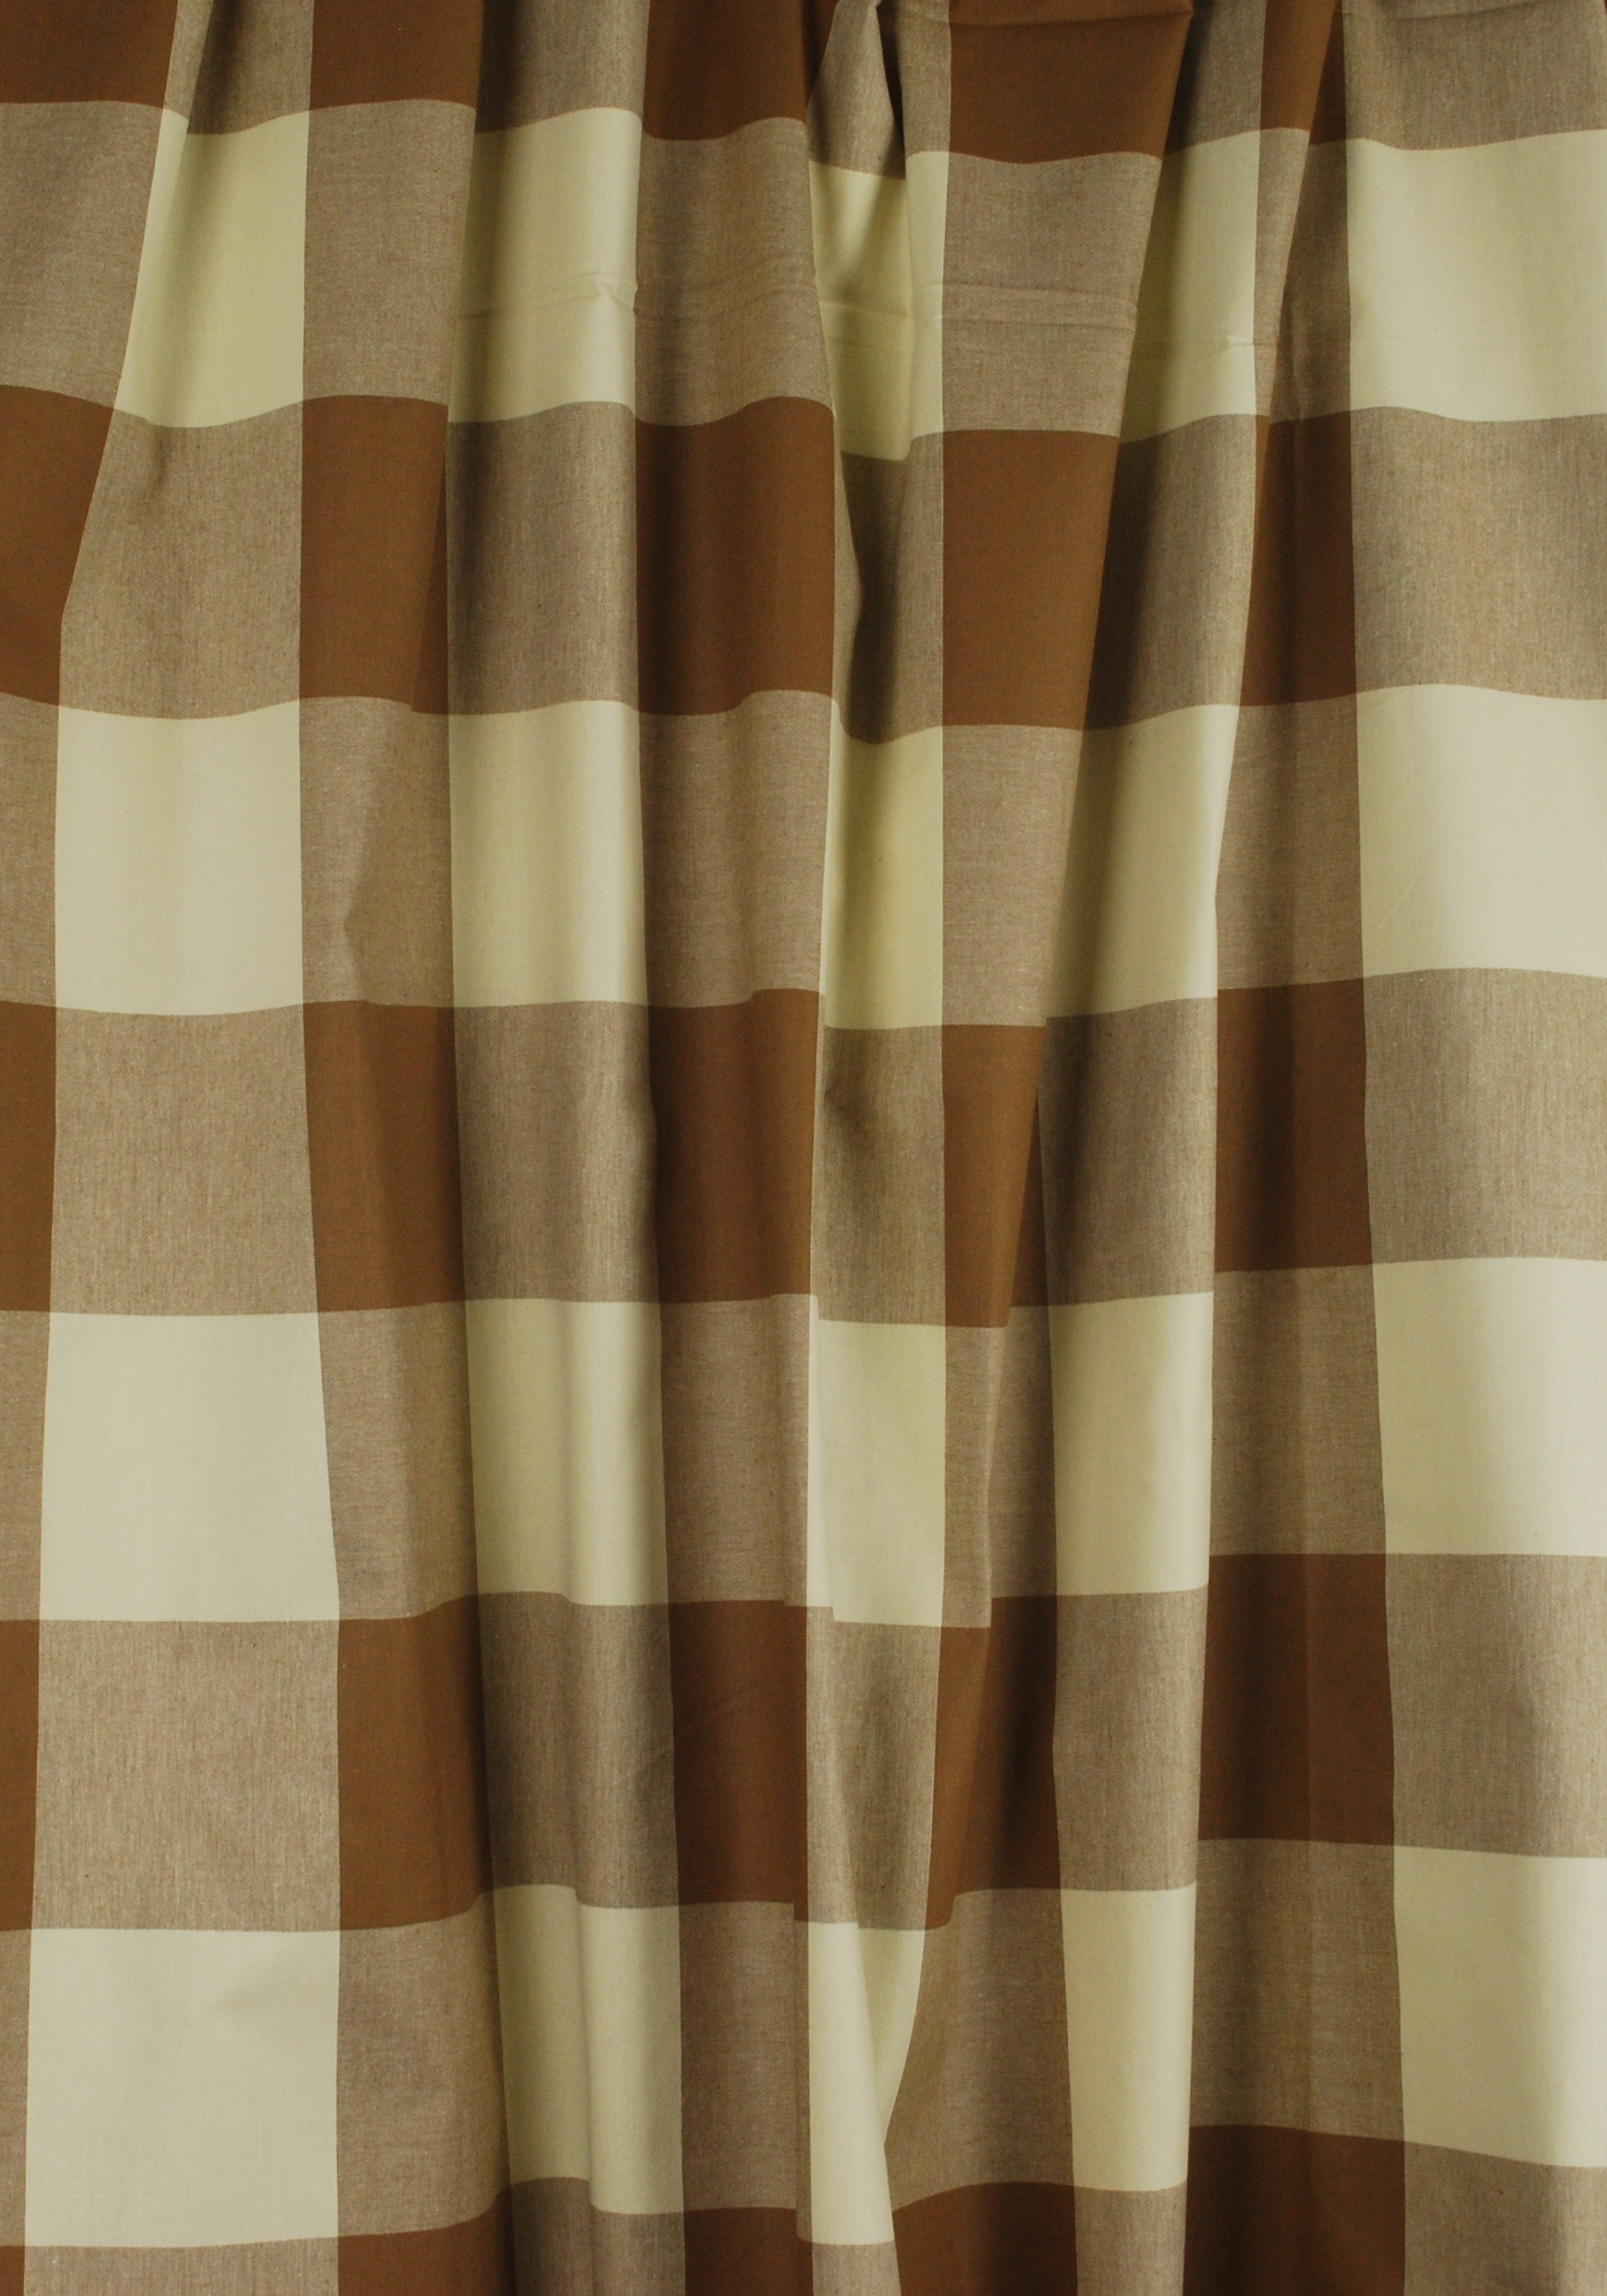 Brown Cream Buffalo Check Drapery Fabric Poseidon Acorn Fabricut 1738x2483